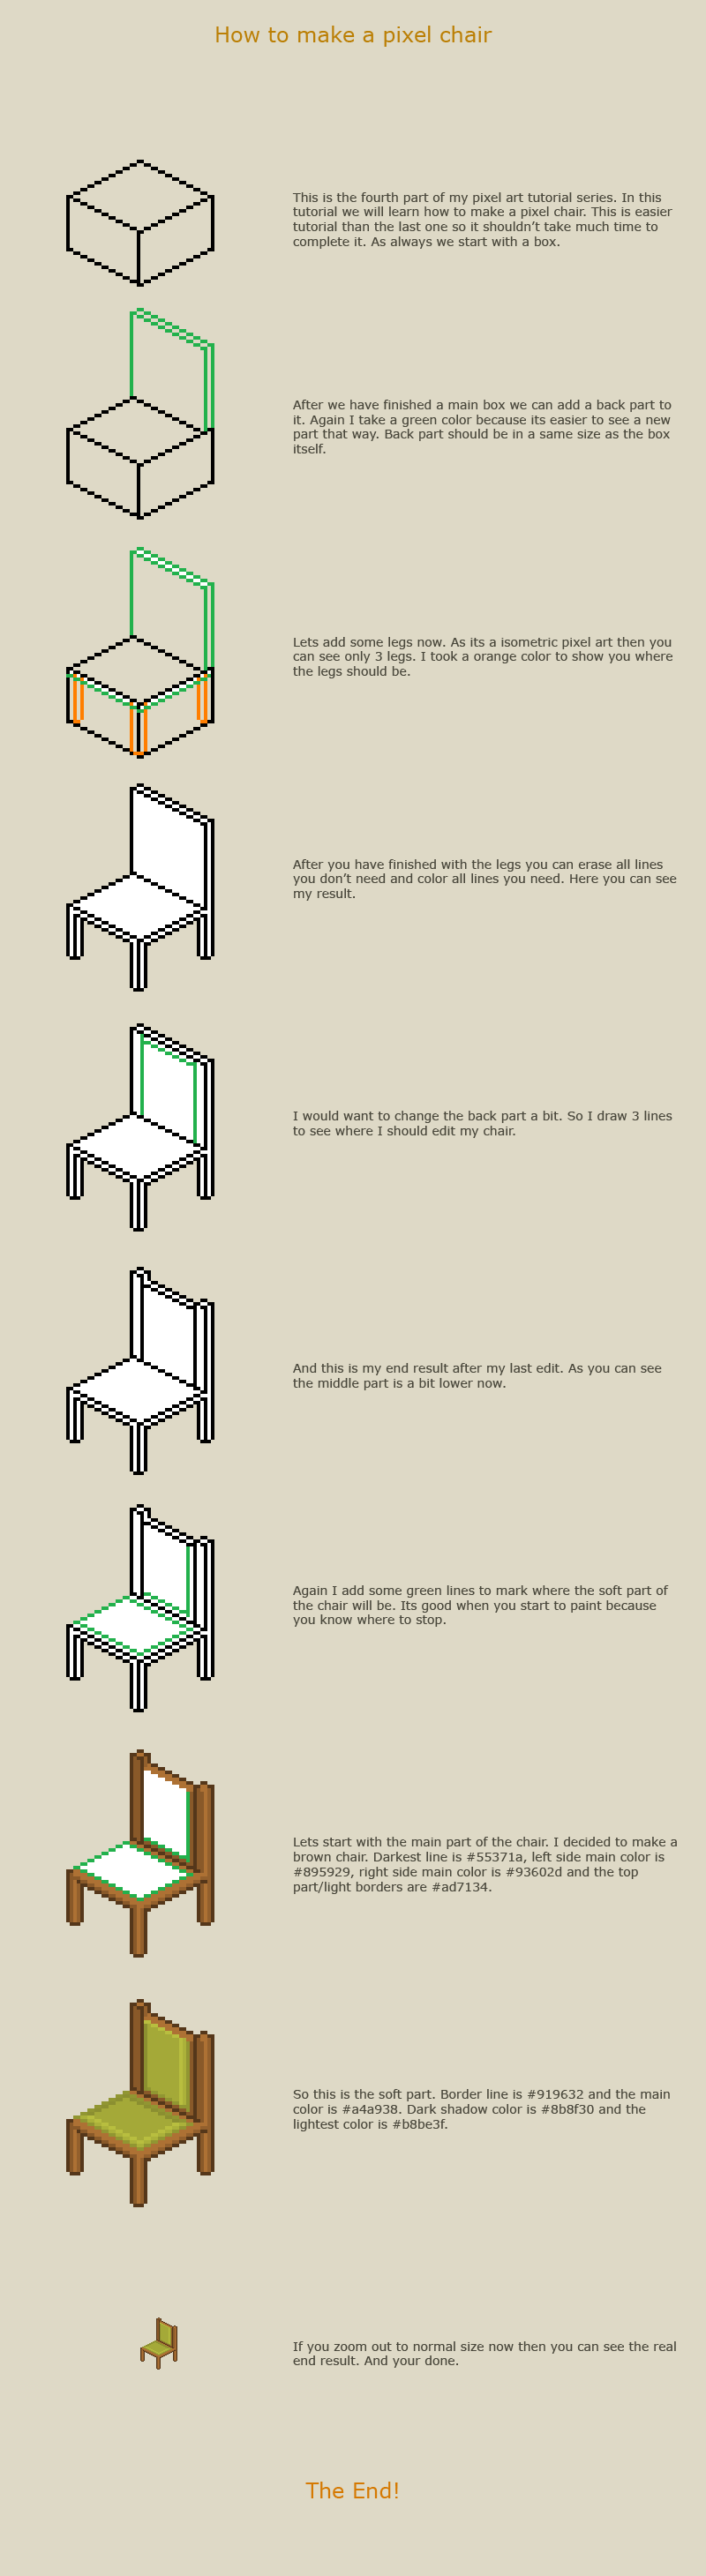 How to make a pixel chair by vanmall